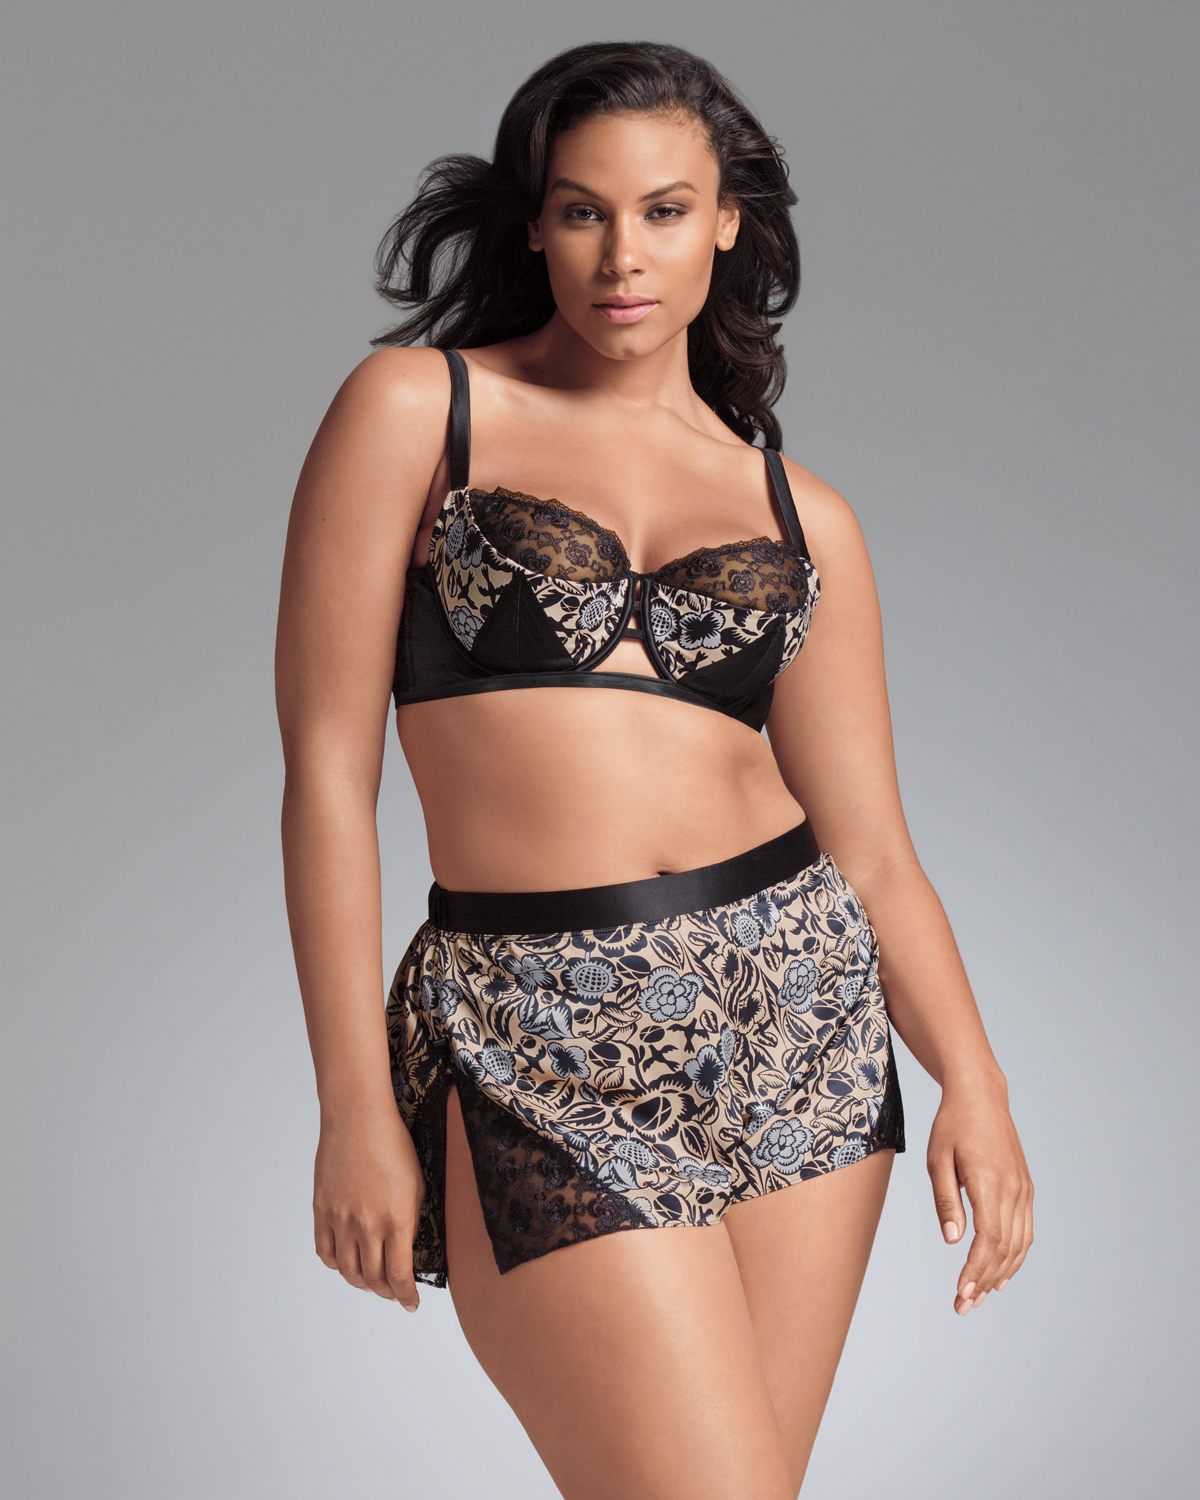 Find a Lane Bryant plus size clothing store near you today. Shop plus size dresses, jeans, tops & the best-fitting Cacique bras and panties.